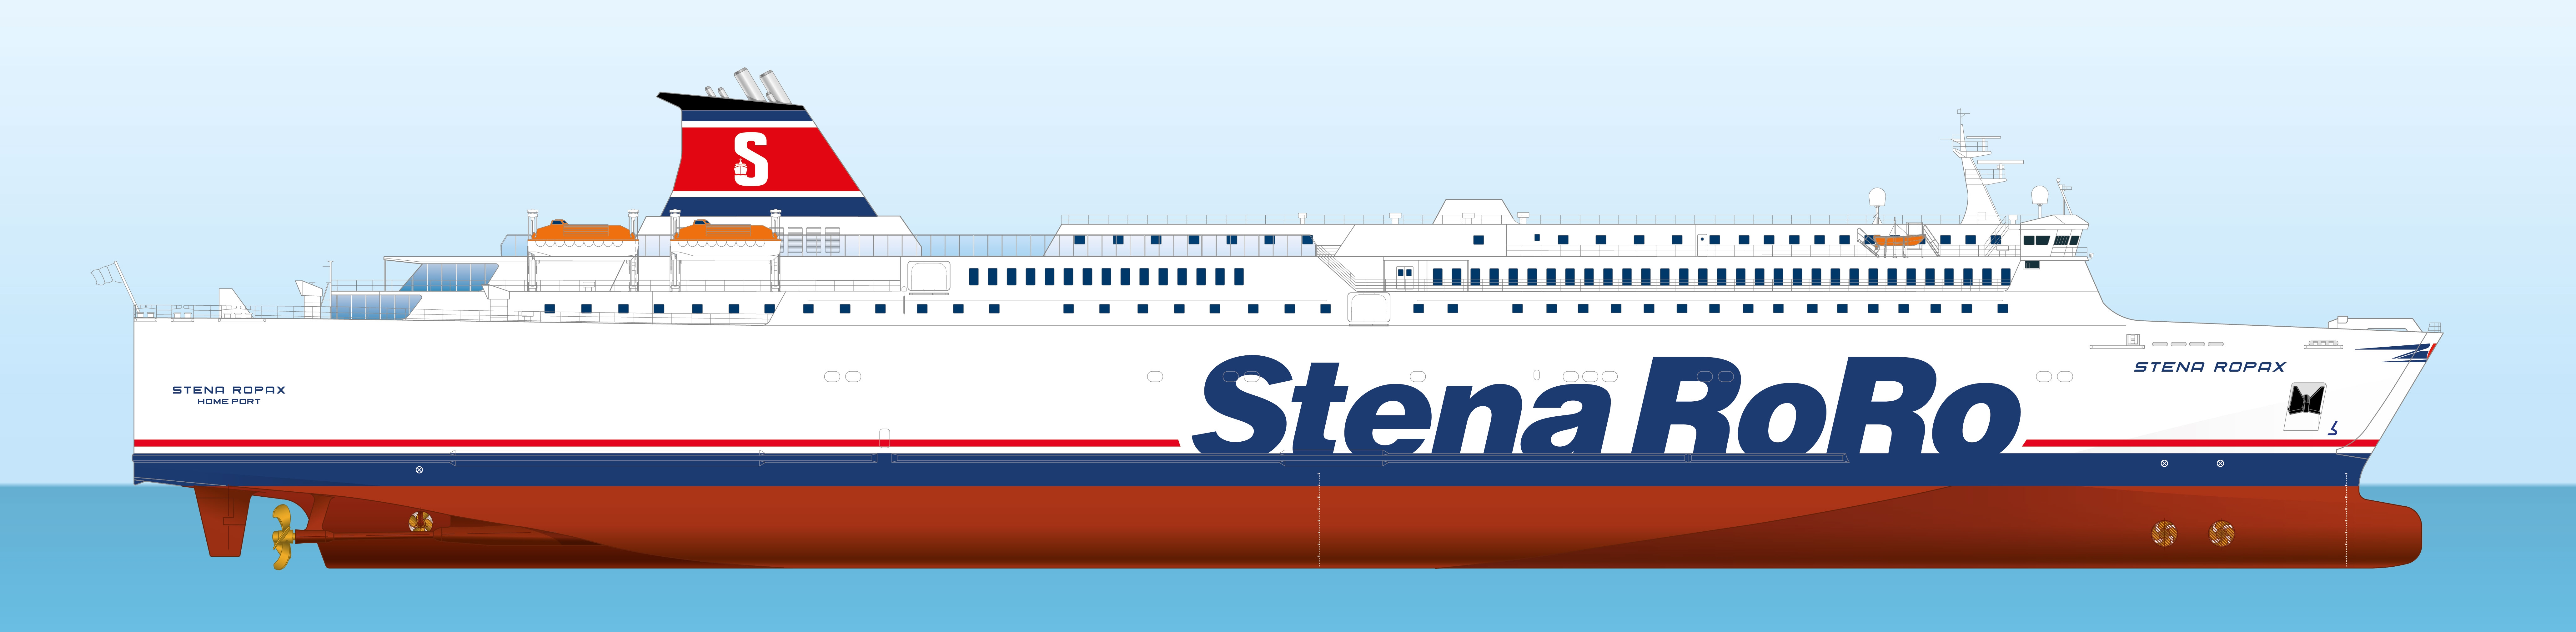 PR] Stena RoRo acquires RoPax vessel in Japan | NI Ferry Site